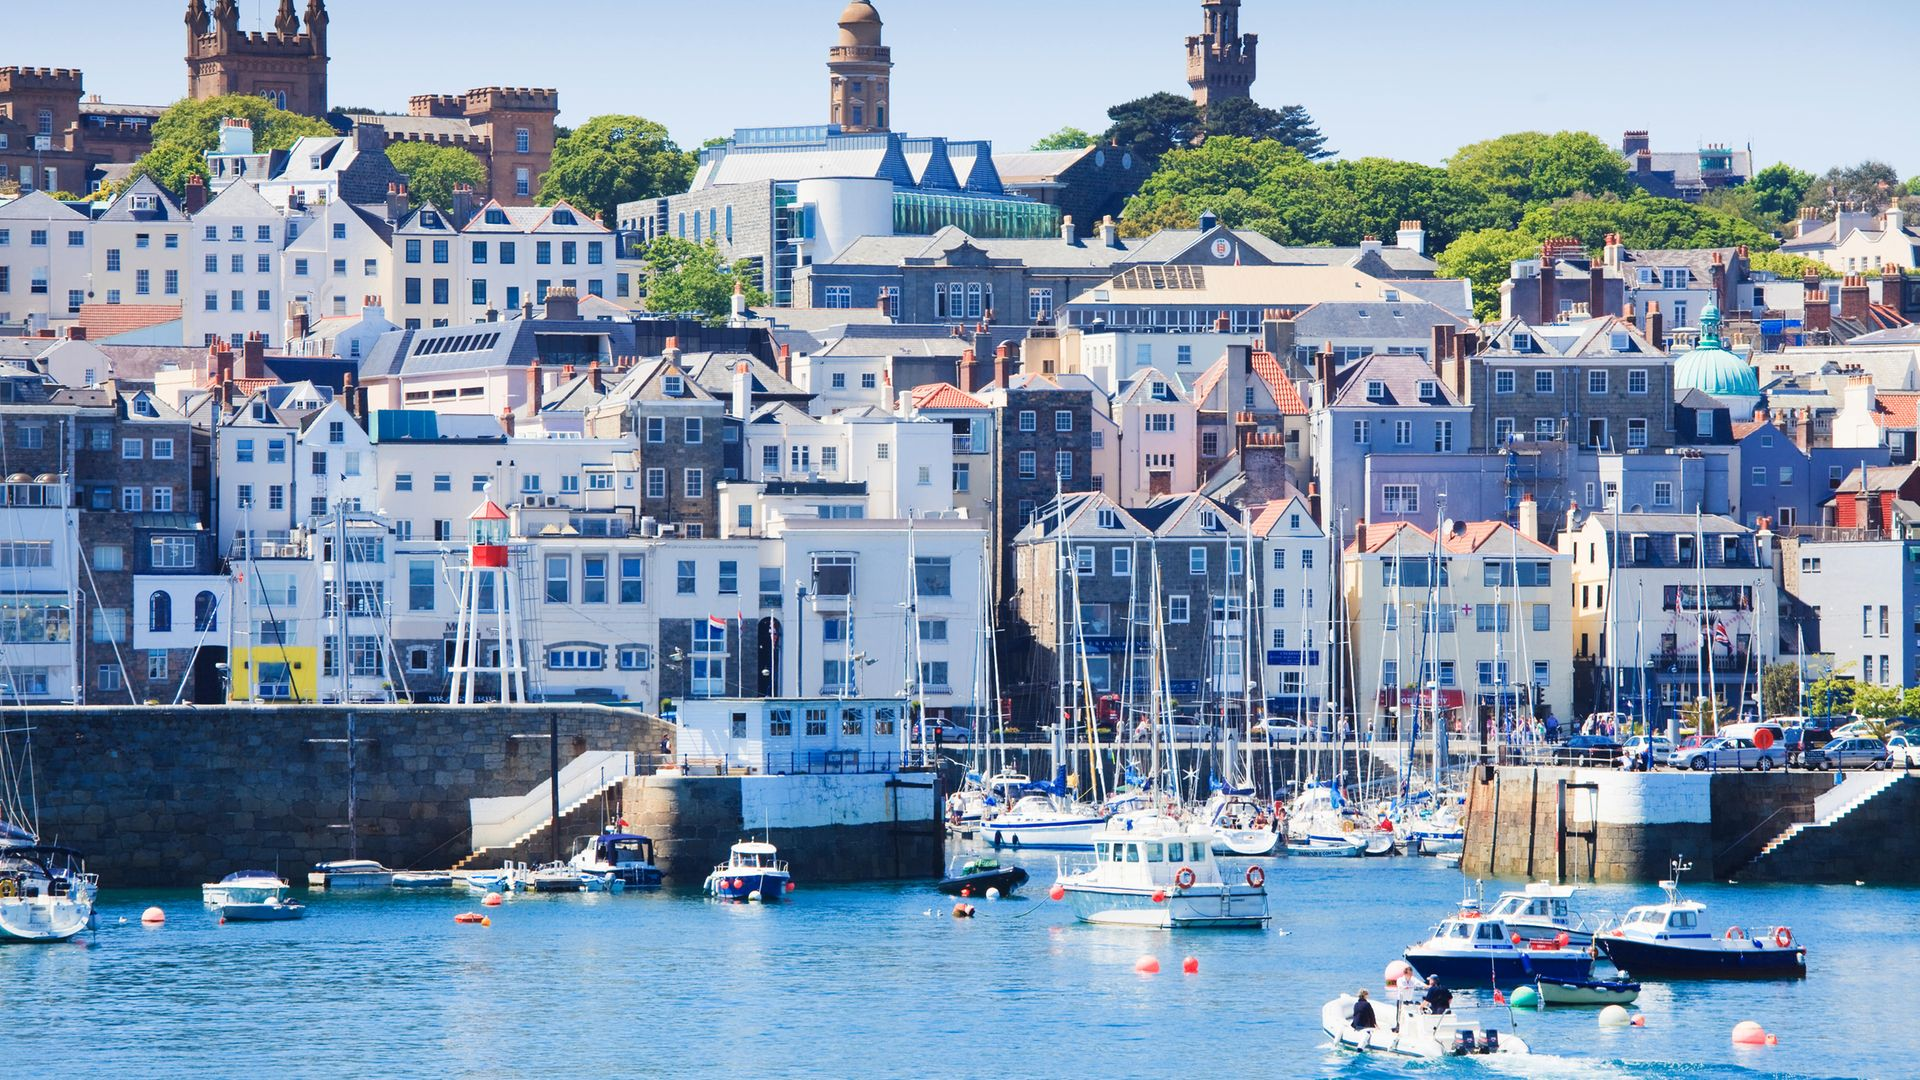 The harbour of St. Peter Port, Guernsey, Channel Islands, United Kingdom - Credit: Getty Images